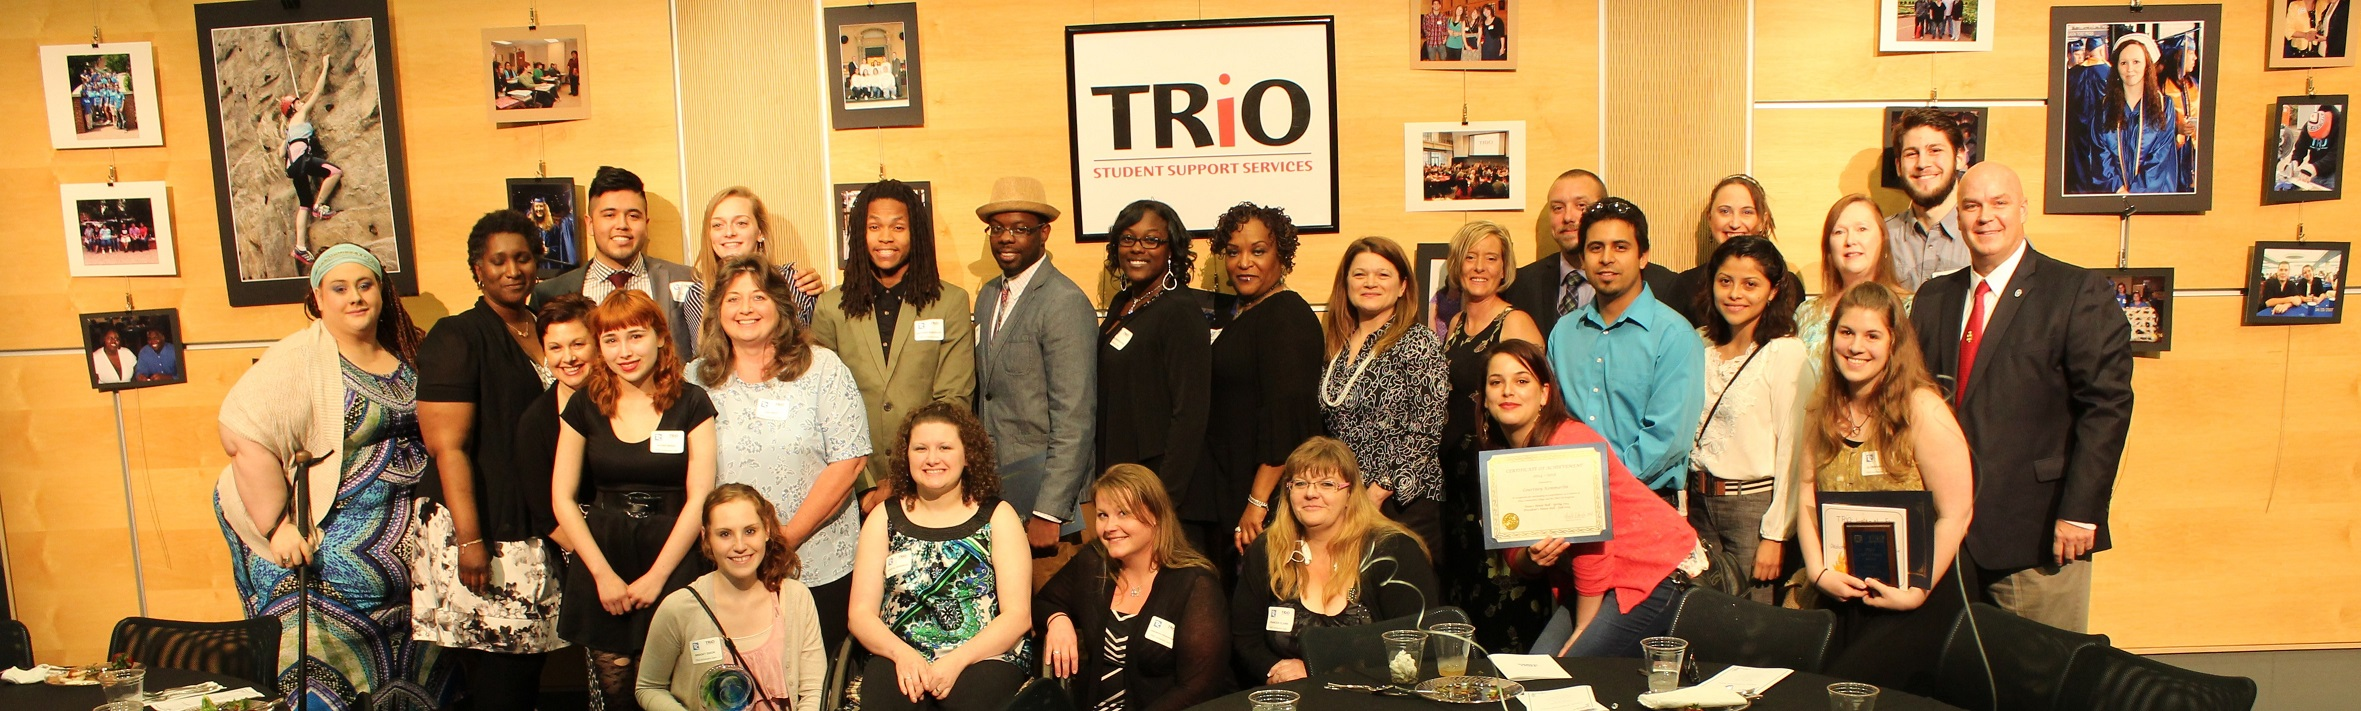 TRIO STUDENT SUPPORT SERVICES Gala Group Picture